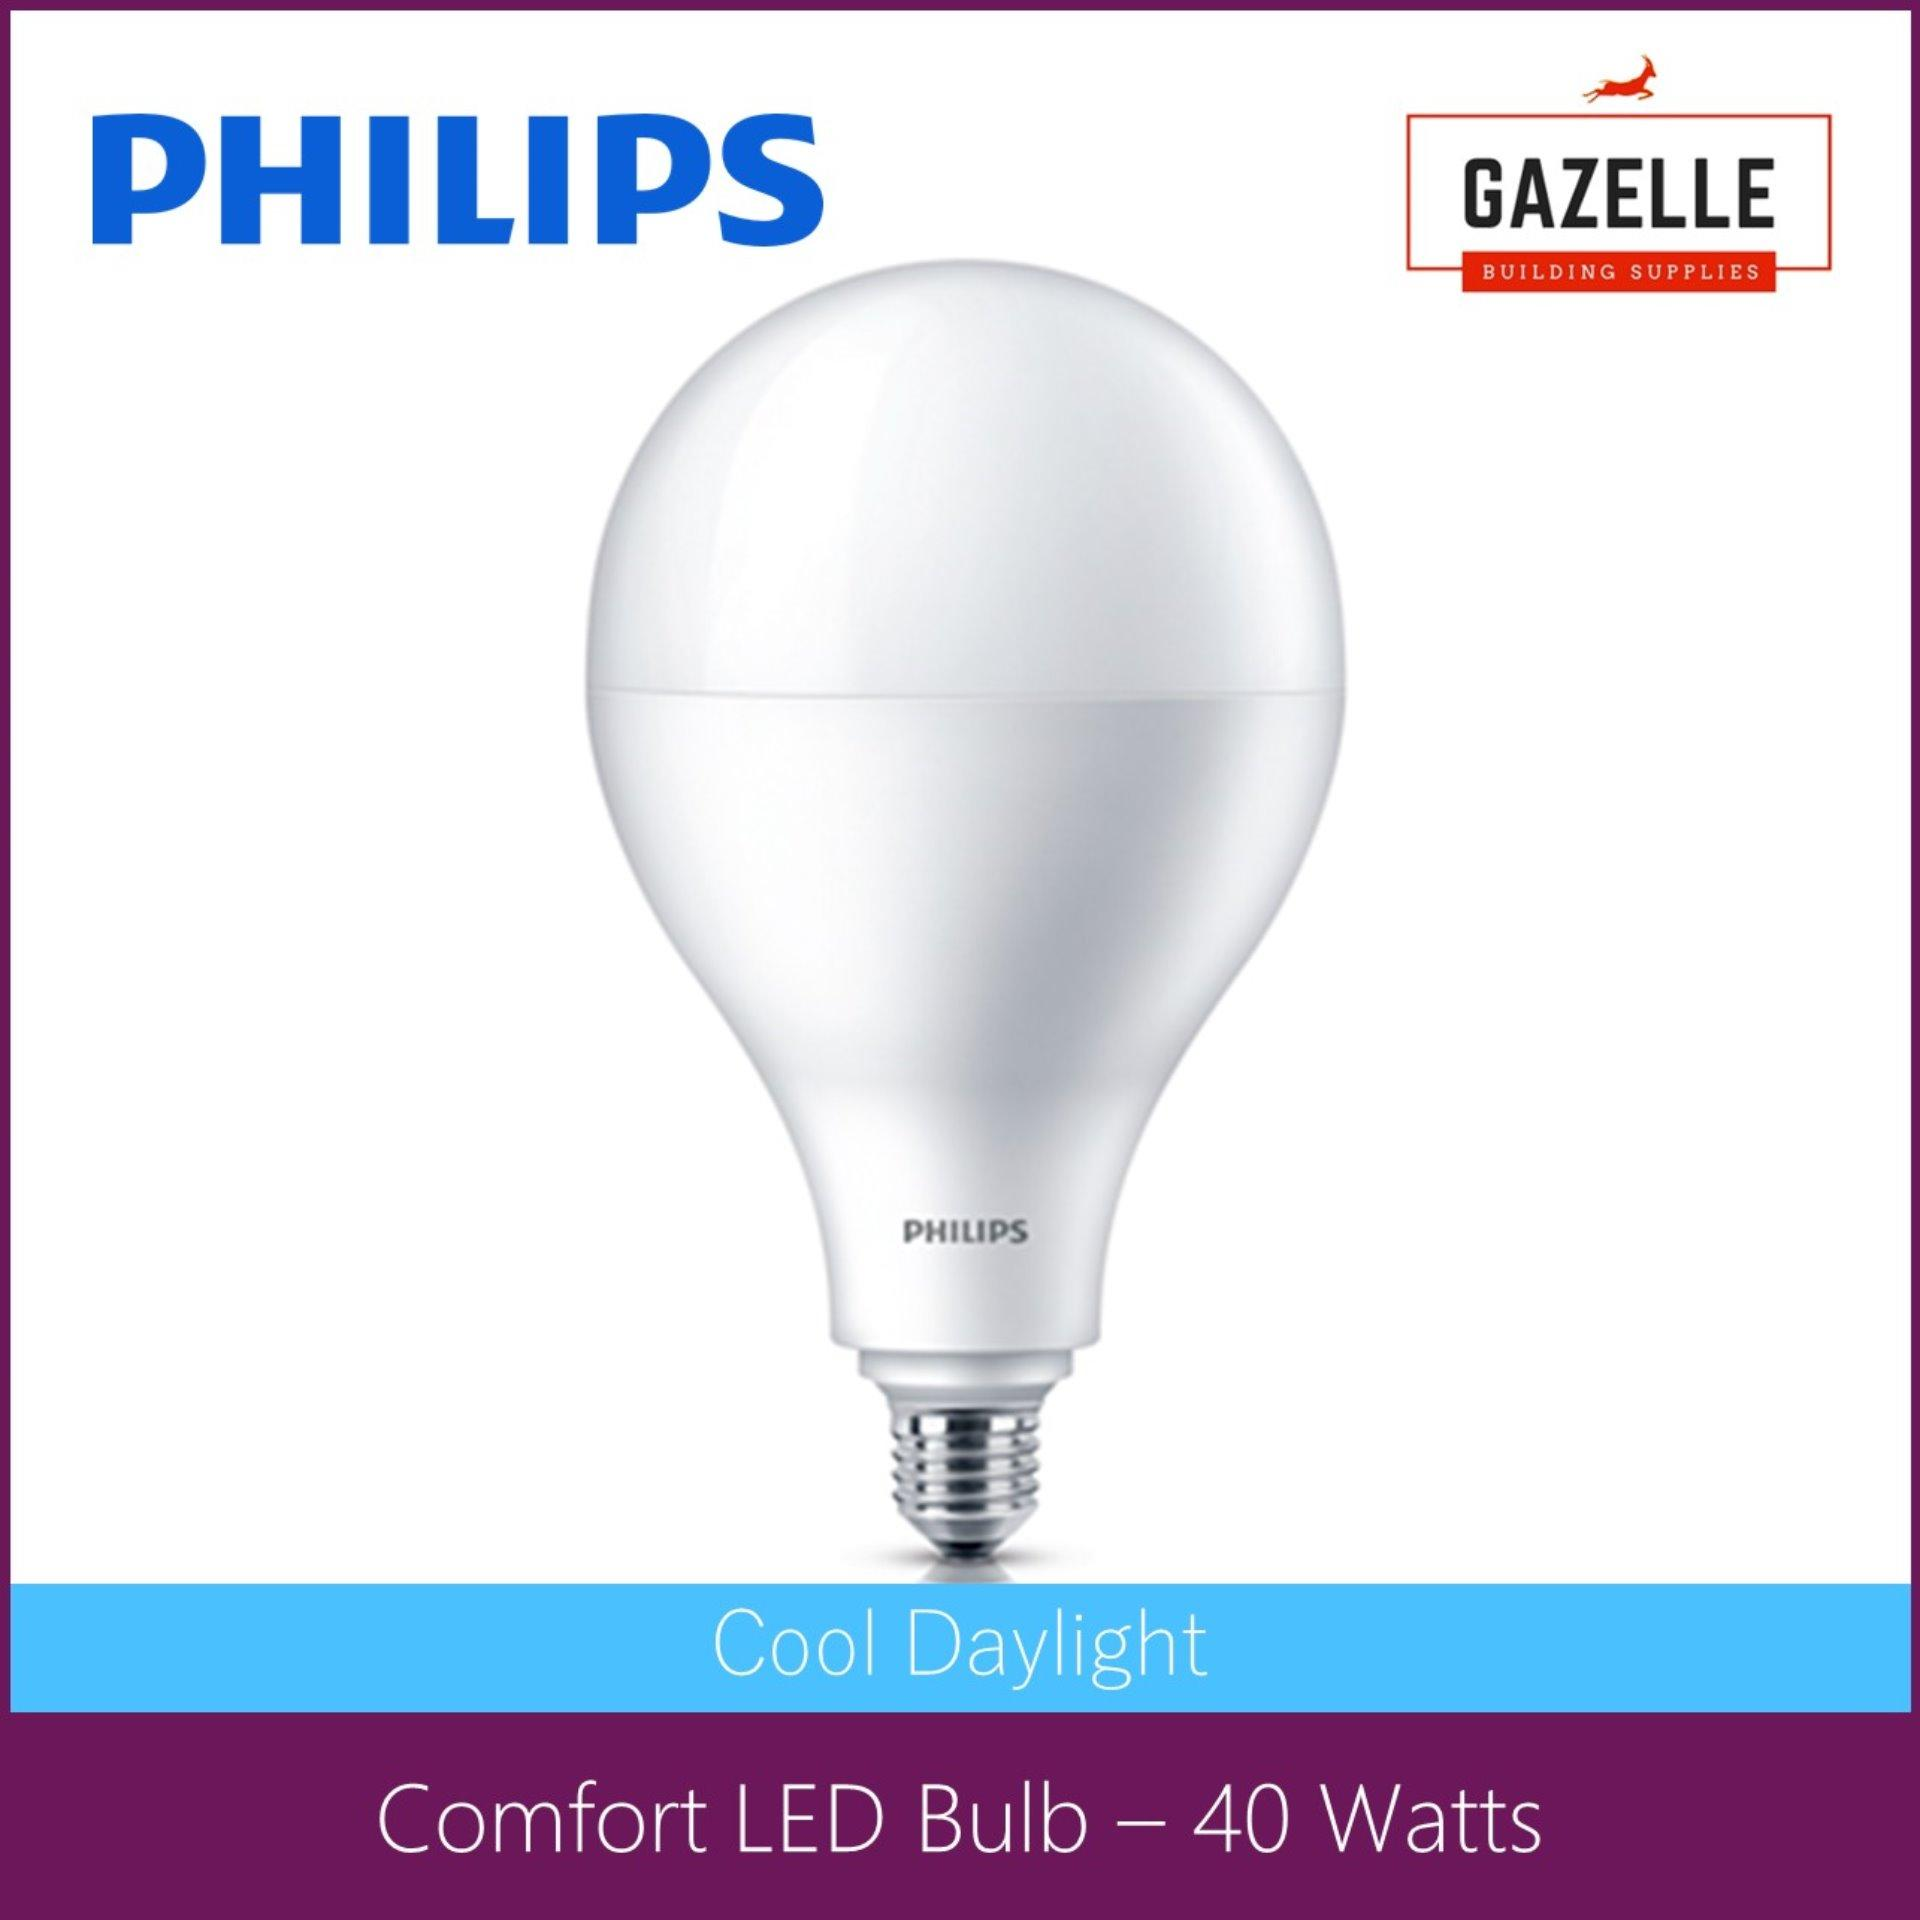 4ac814a12f8 Philips Philippines - Philips Light Bulb for sale - prices   reviews ...